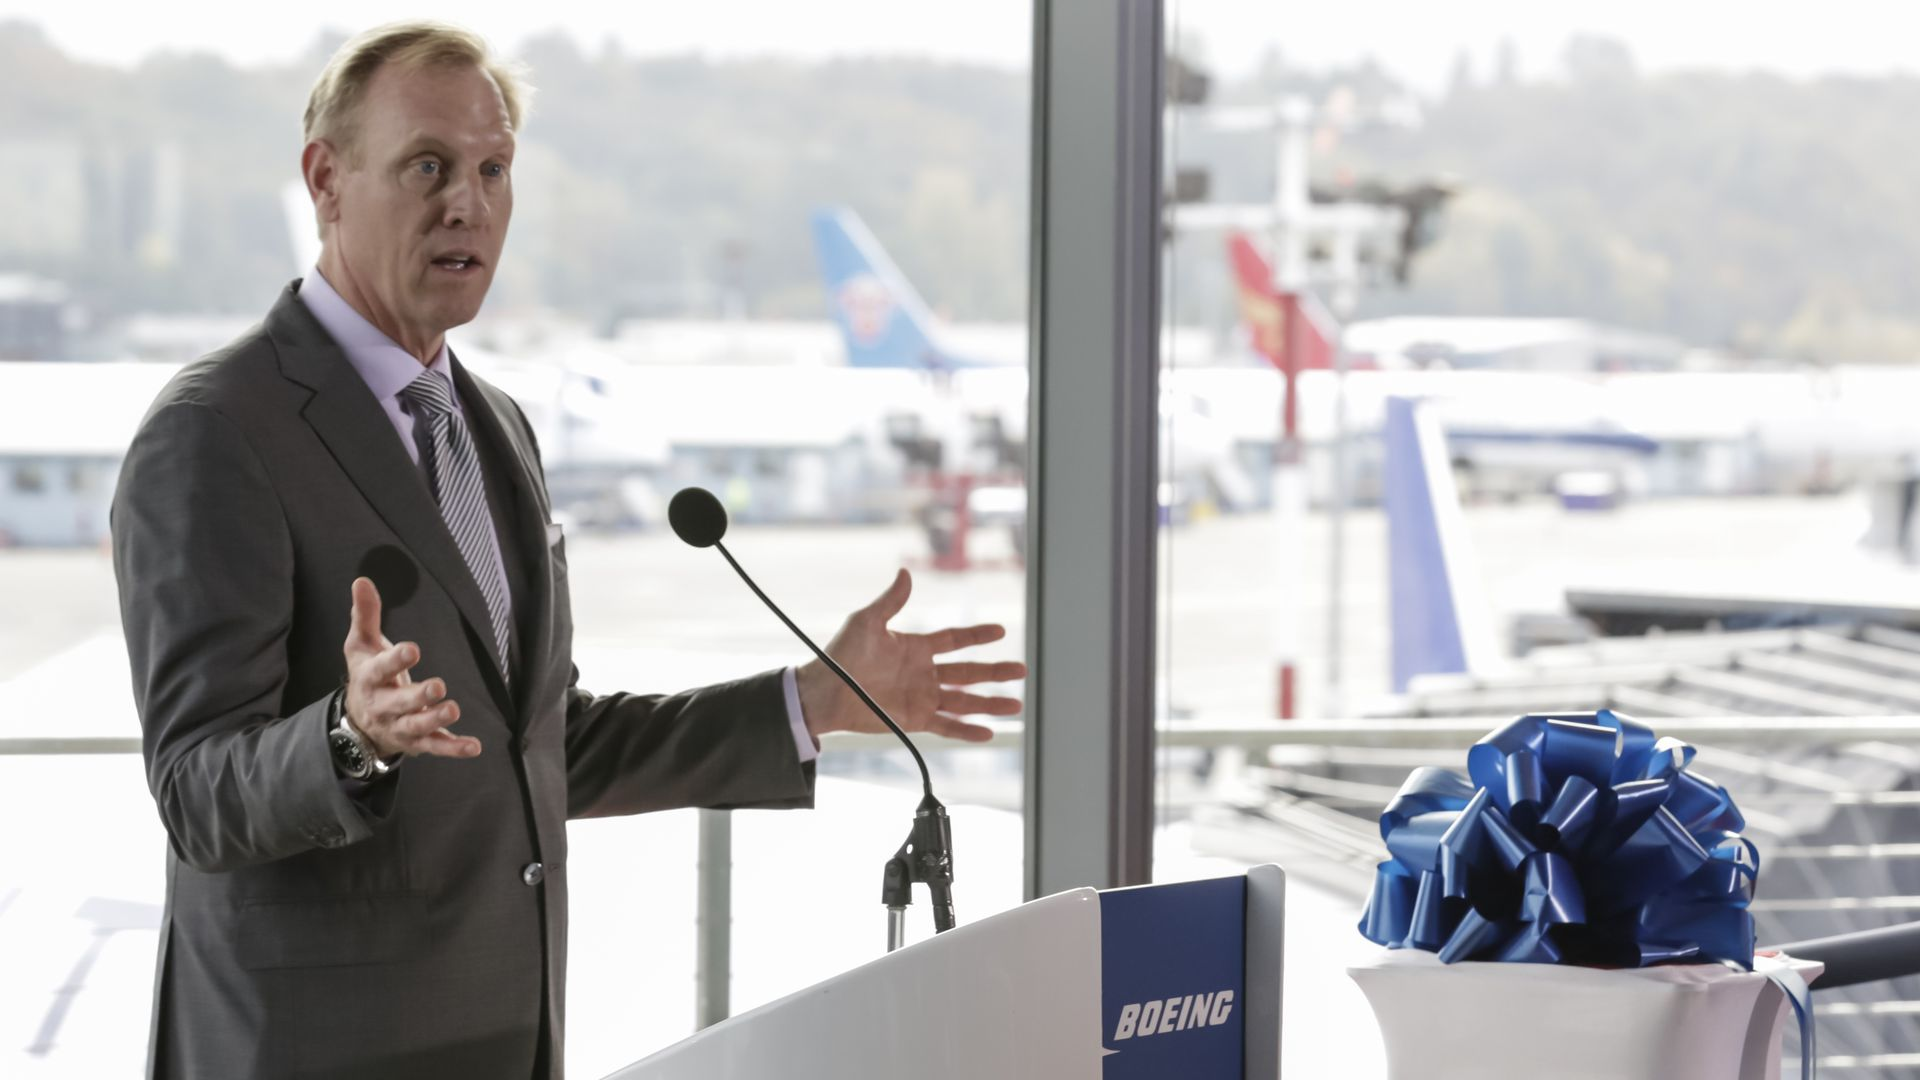 In this image, Pat Shanahan speaks in front of a microphone and podium. The windows behind him look out onto an airport.